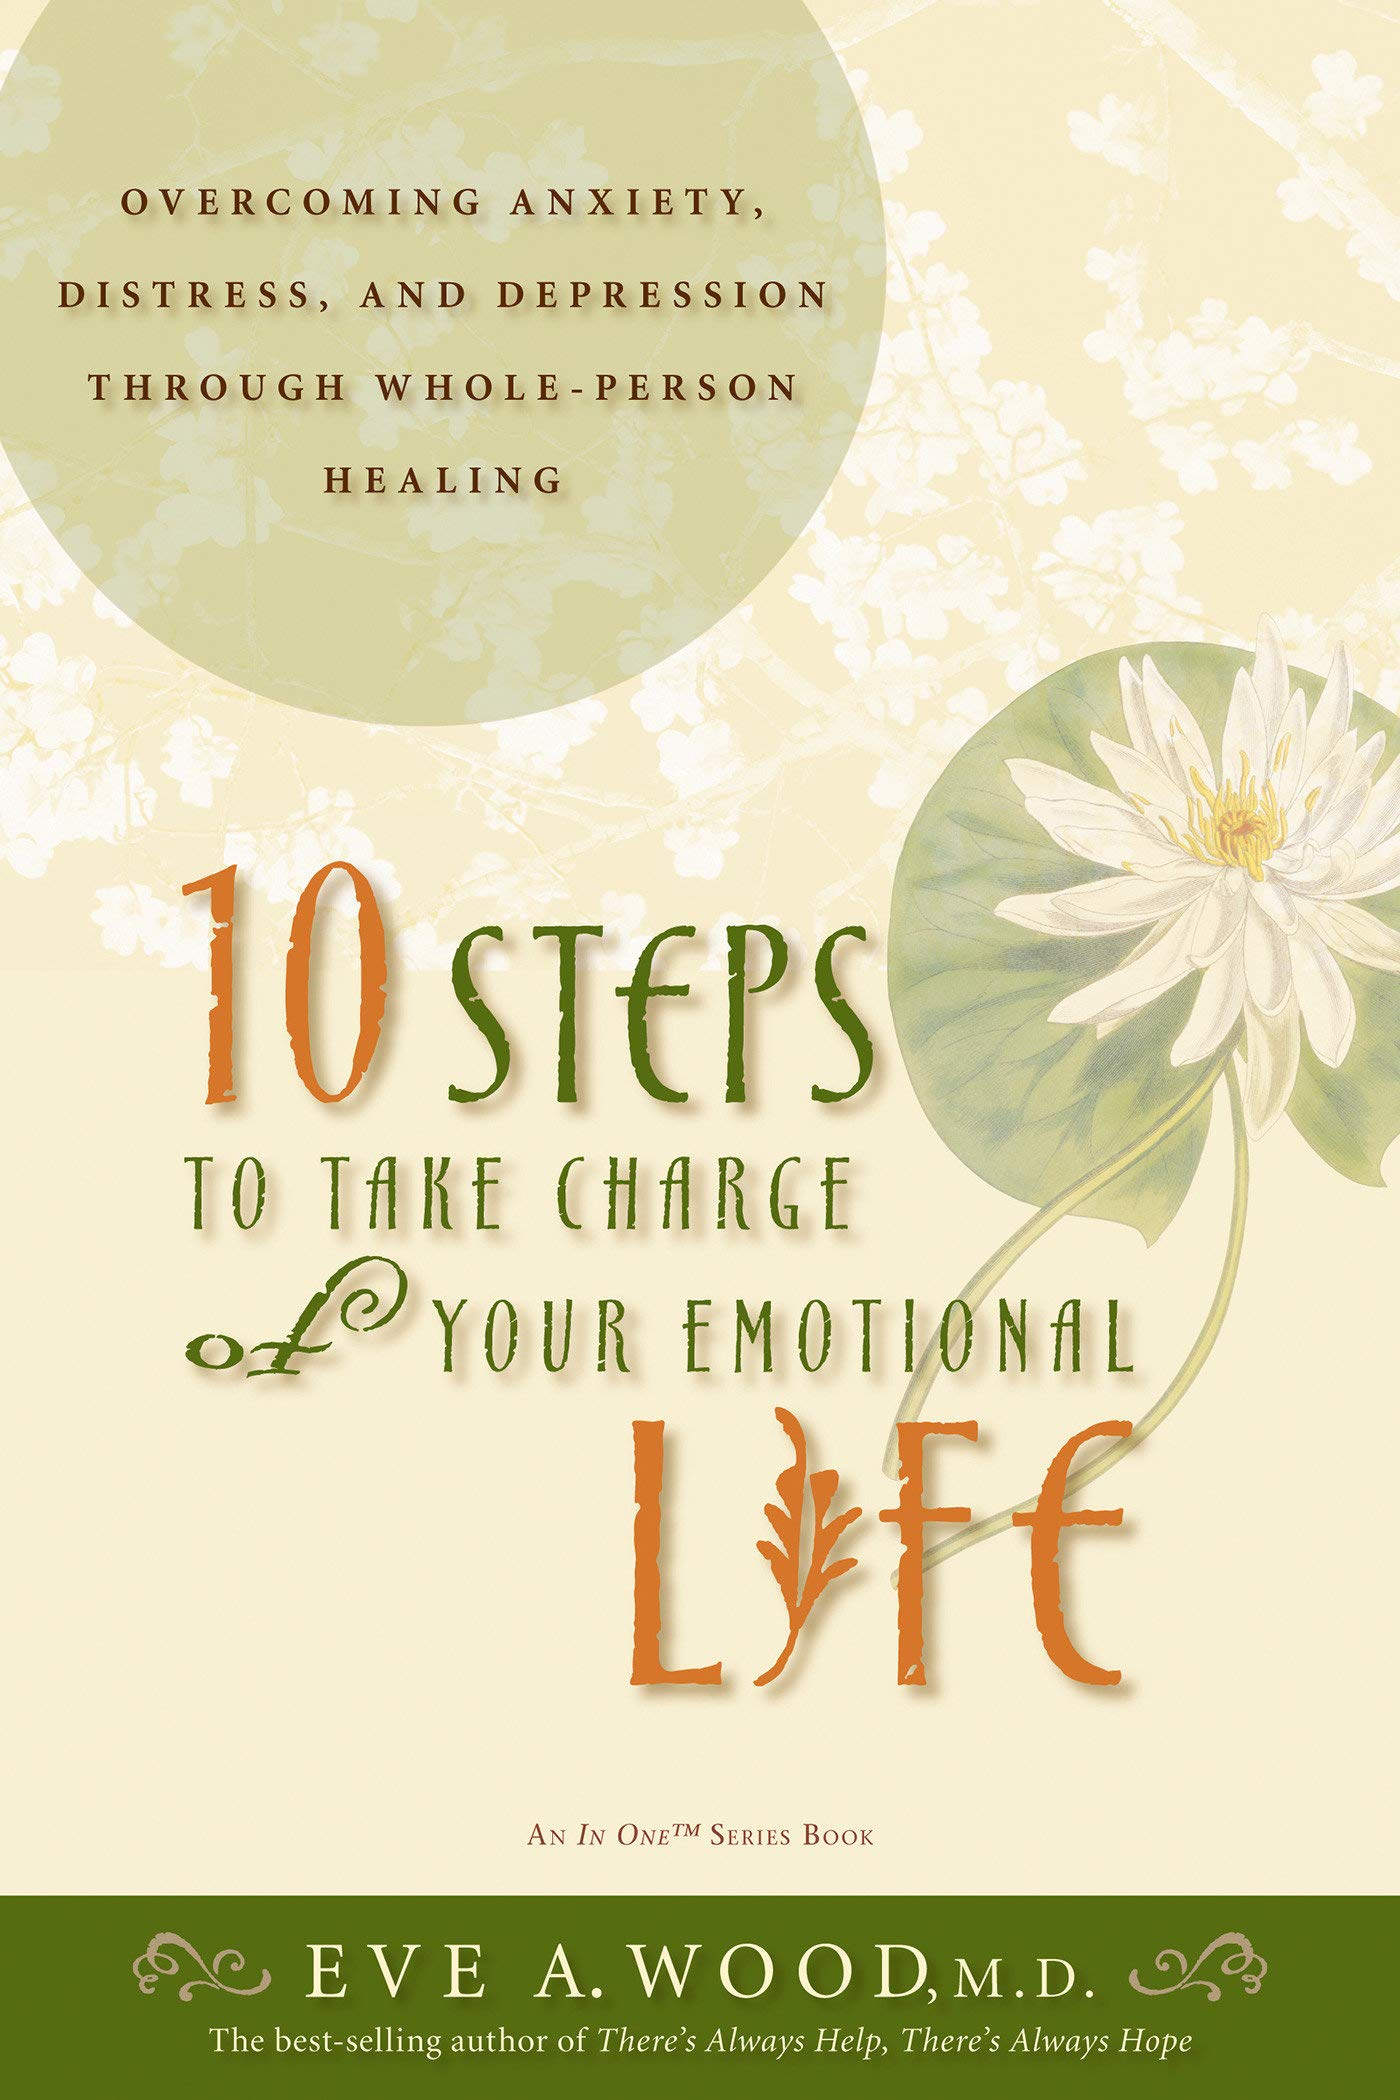 Download 10 Steps to Take Charge of Your Emotional Life: Overcoming Anxiety, Distress, and Depression Through Whole-Person Healing (In One) pdf